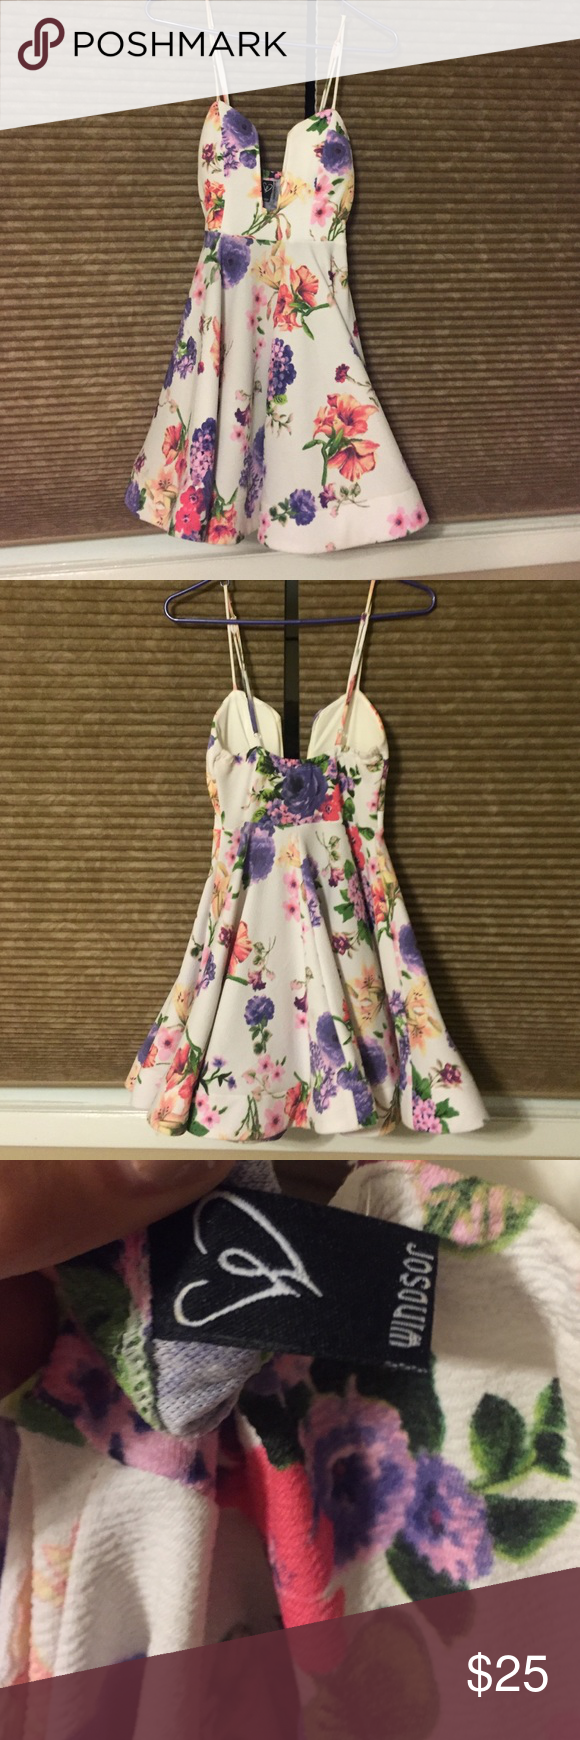 Windsor floral dress Super cute great fit. Built in padding, adjustable straps. Worn one time to a wedding shower ! WINDSOR Dresses Mini